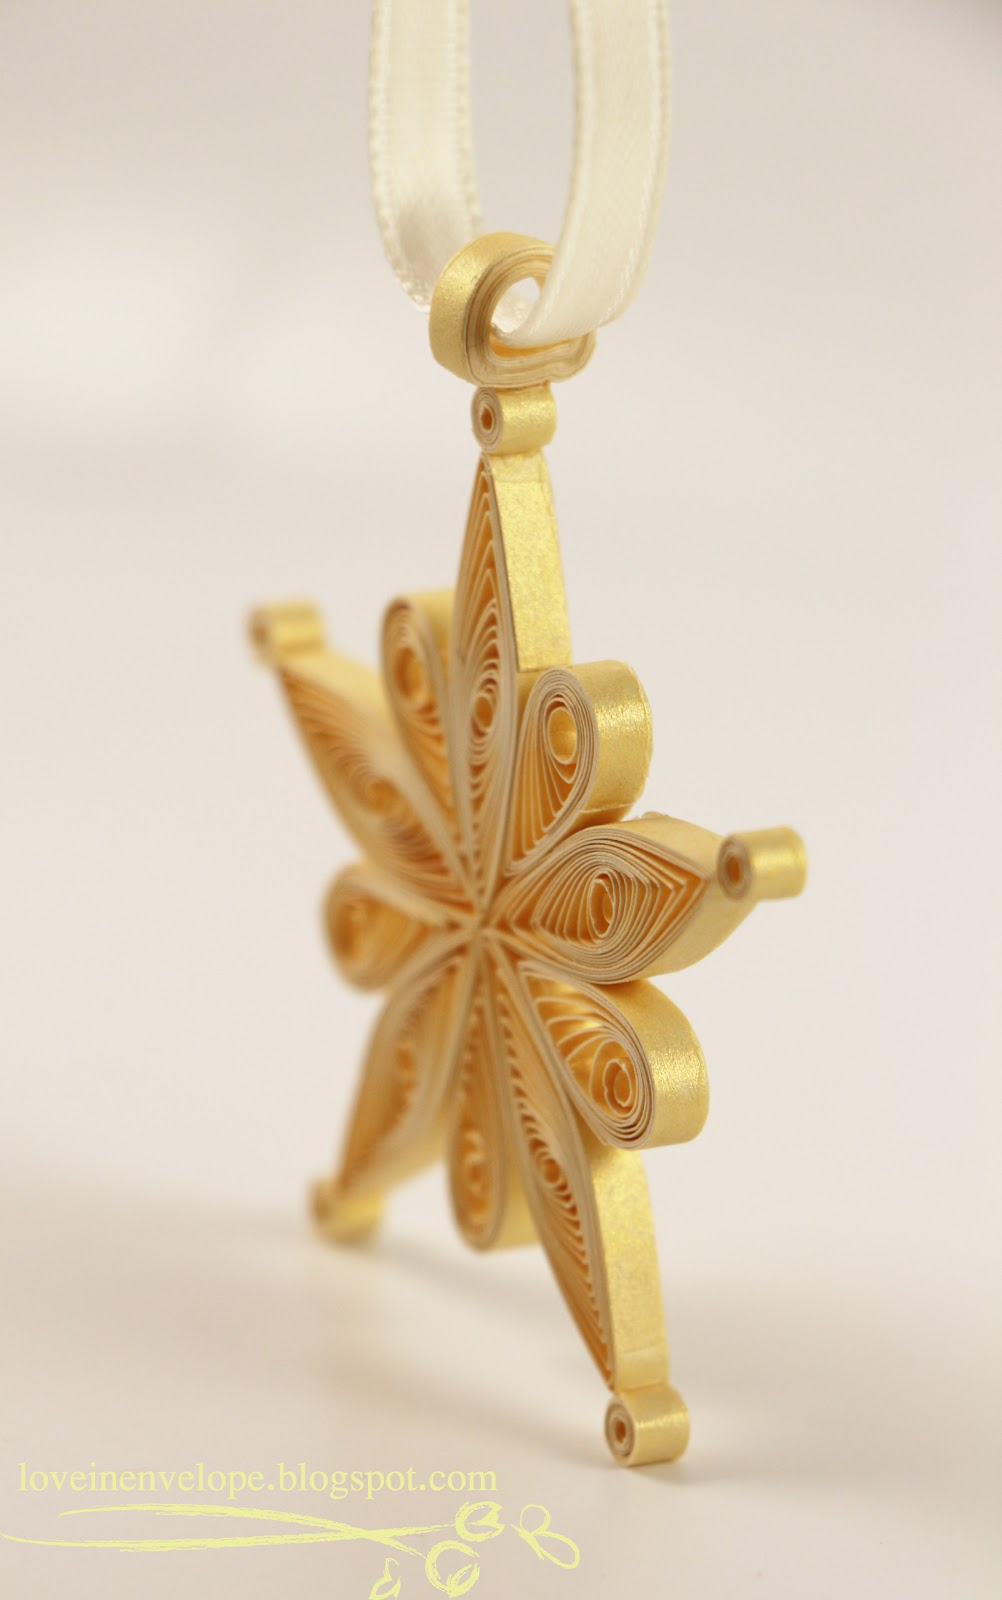 Love in envelope almost quilled gold snowflake star